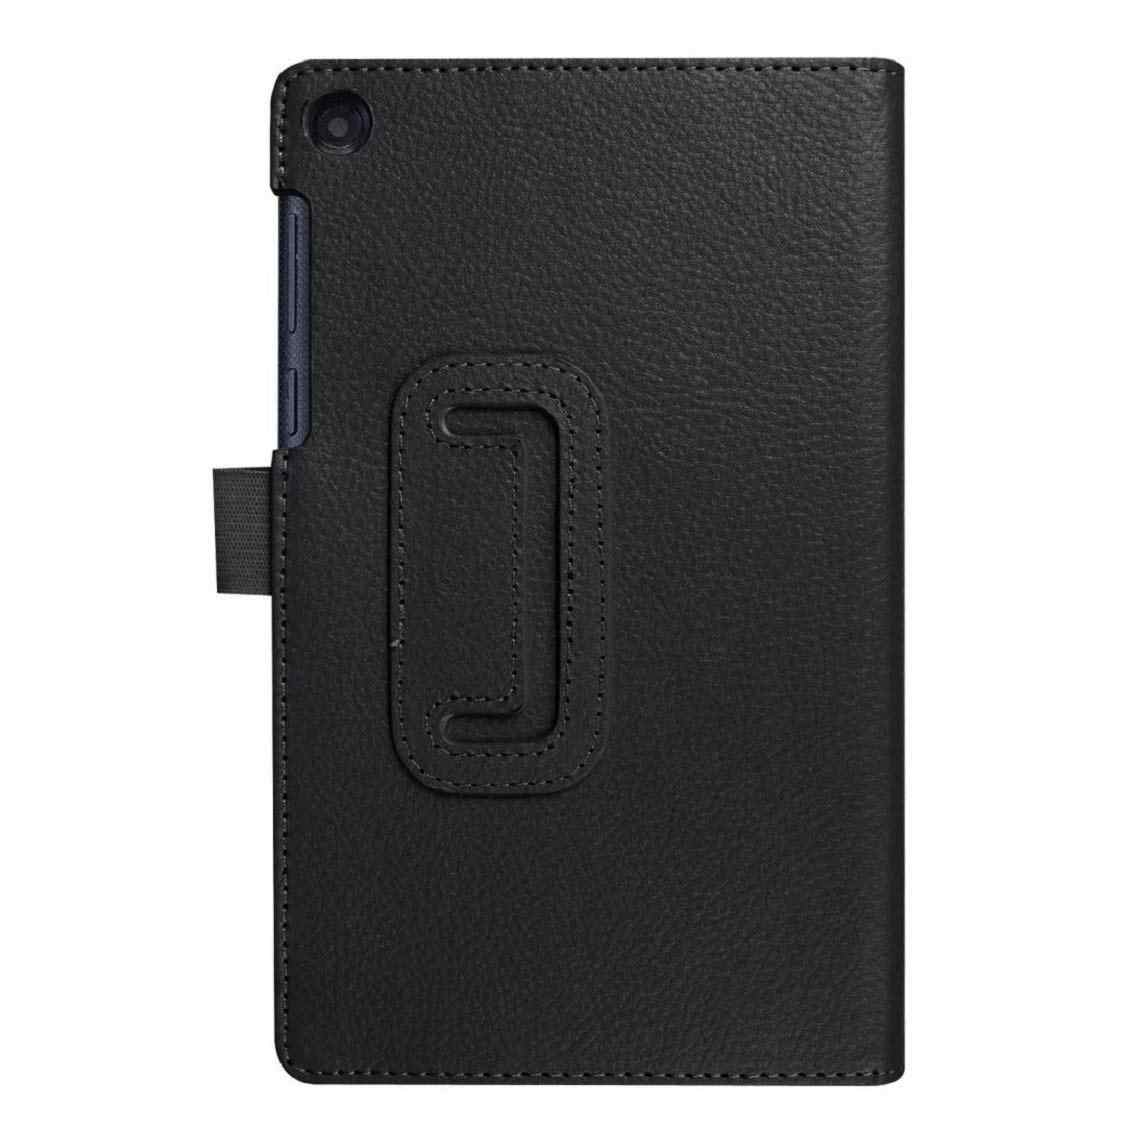 Case Cover Voor Lenovo Tab 3 7 Essentiële 7.0/710F TB3-710F TB3-710i 710i TB3 710 Tab3 Tablet Case Beugel flio PU Leather Cover